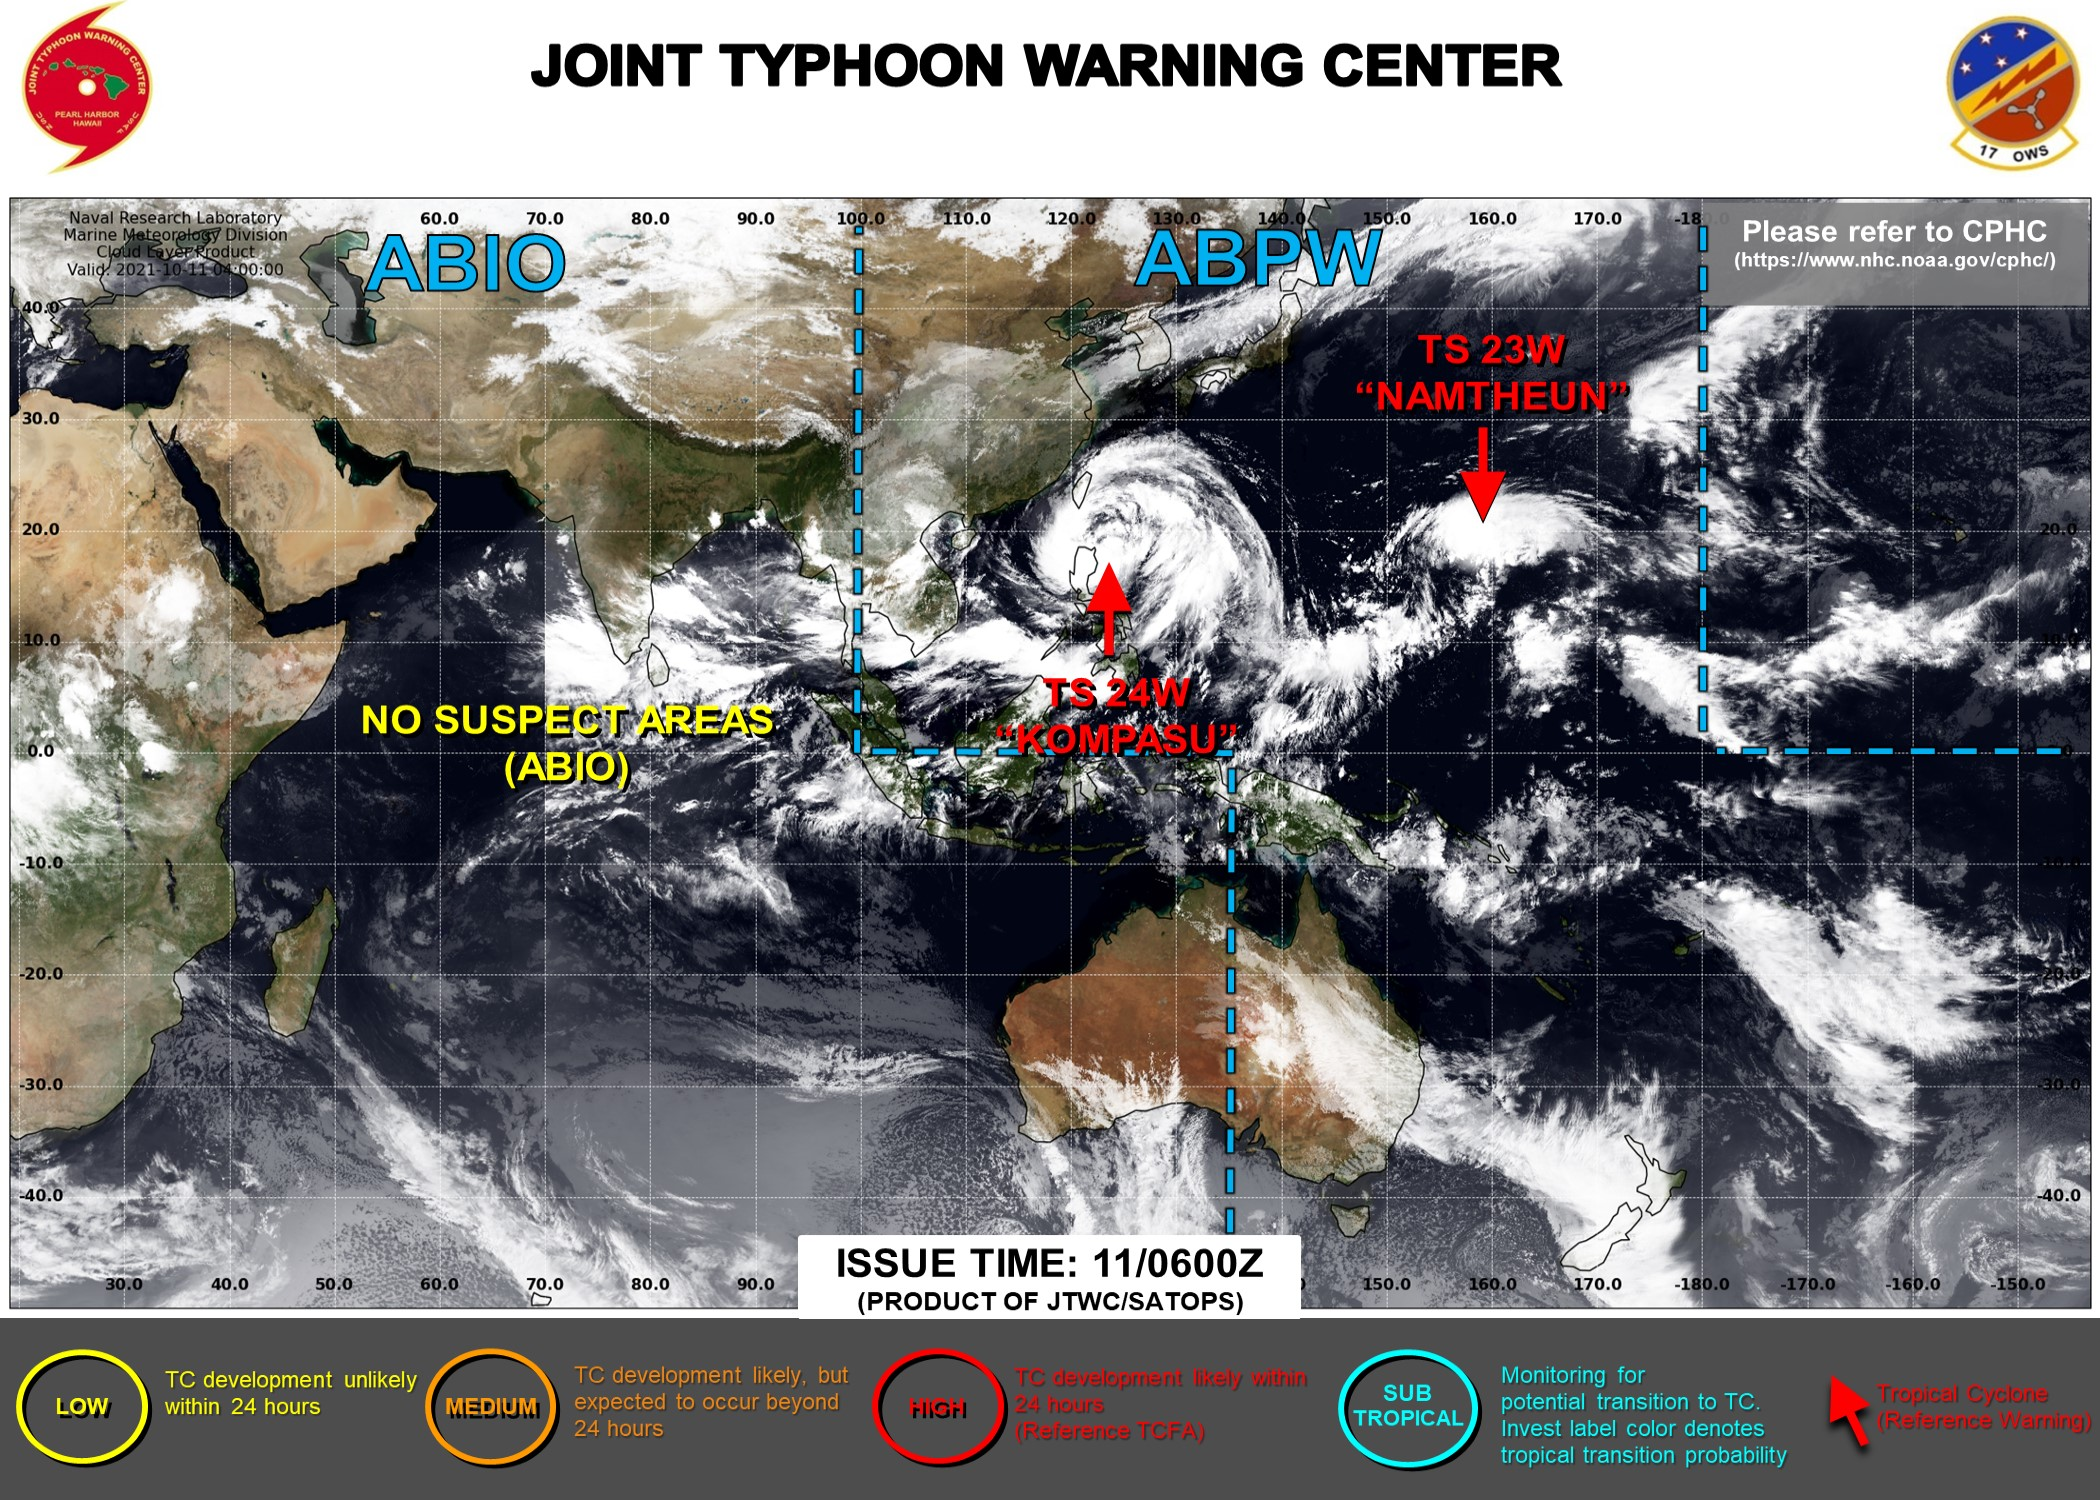 JTWC IS ISSUING 6 HOURLY WARNINGS AND 3HOURLY SATELLITE BULLETINS ON 23W AND 24W.